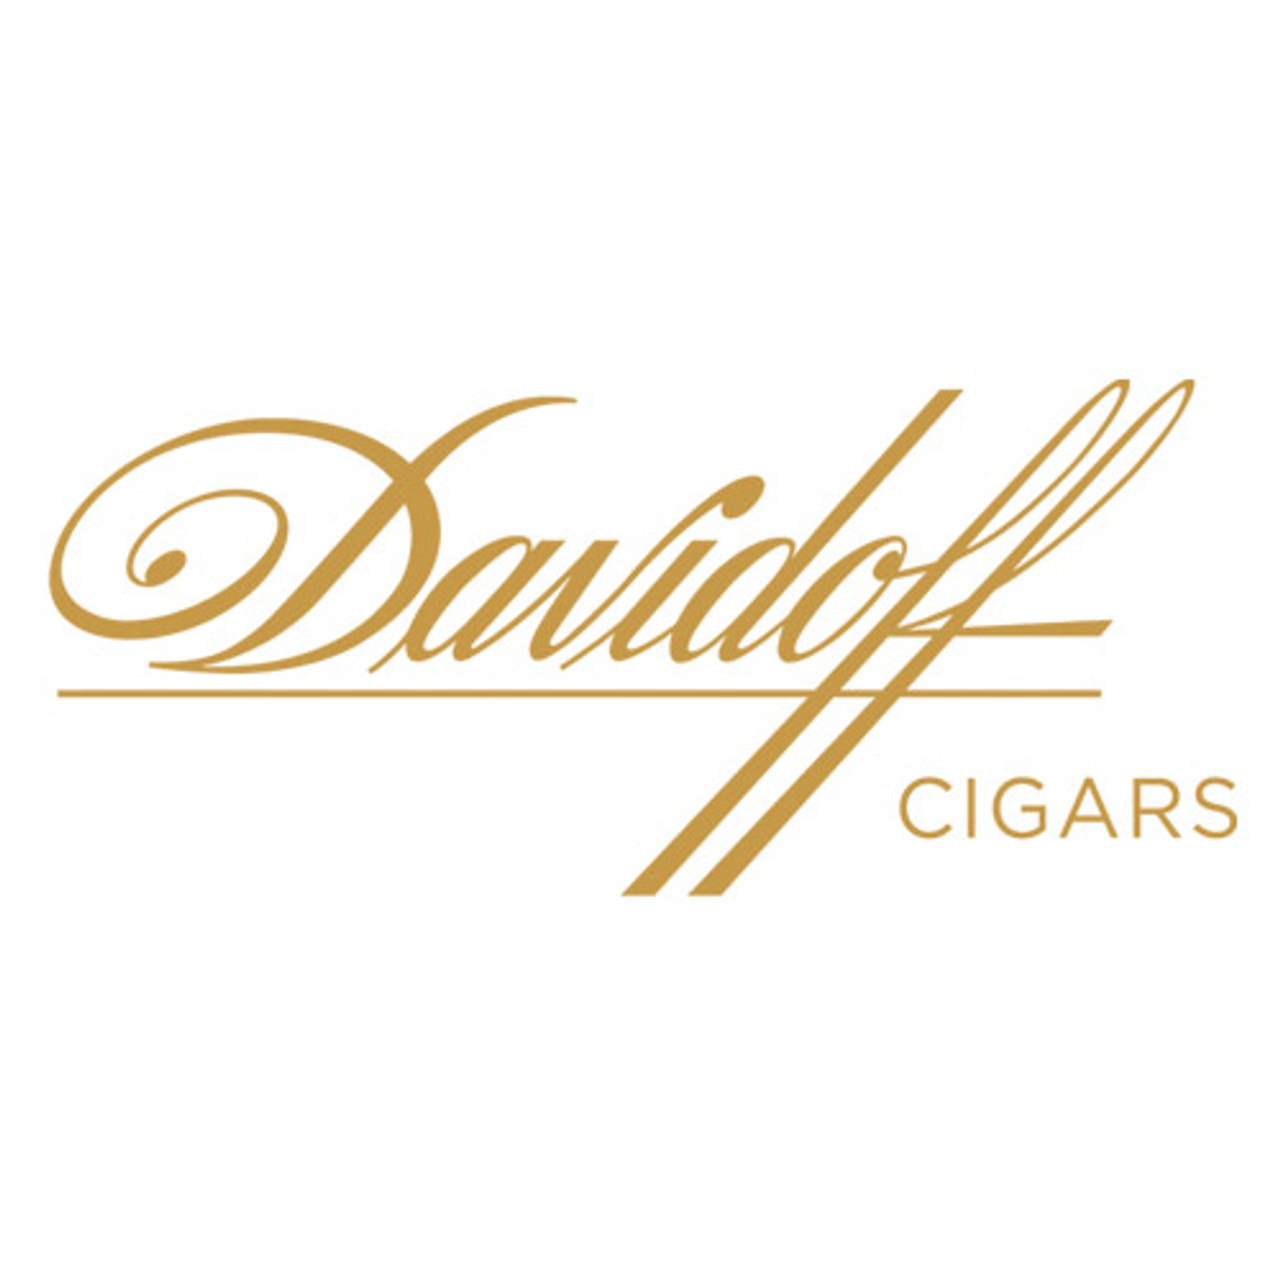 Davidoff Cigarillos and Small Cigars Demi-Tasse Cigars - 4 x 25 (5 Packs of 10 (50 Total))